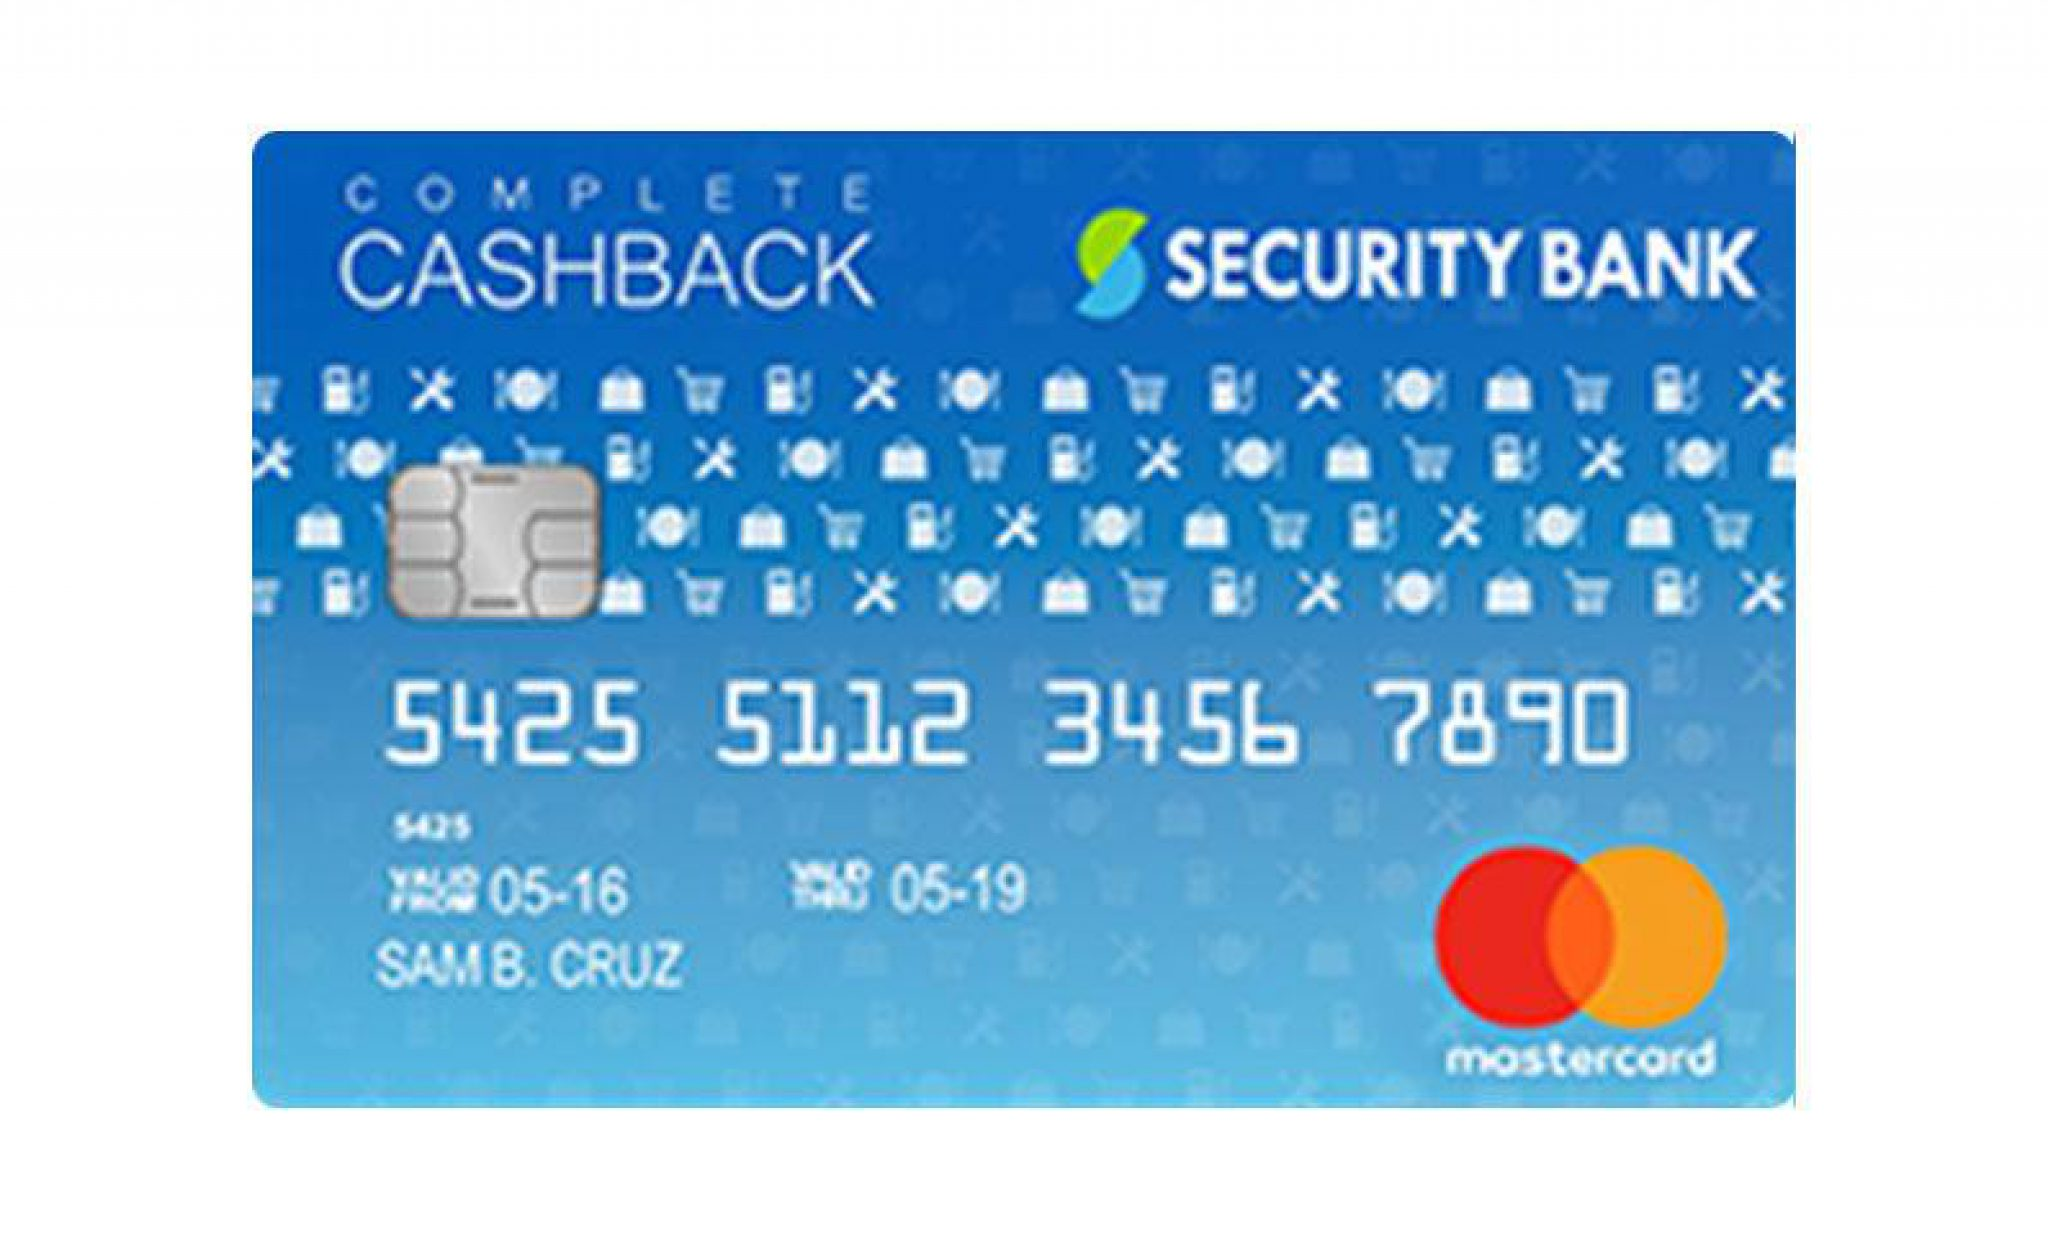 Security Bank Complete Cashback Mastercard